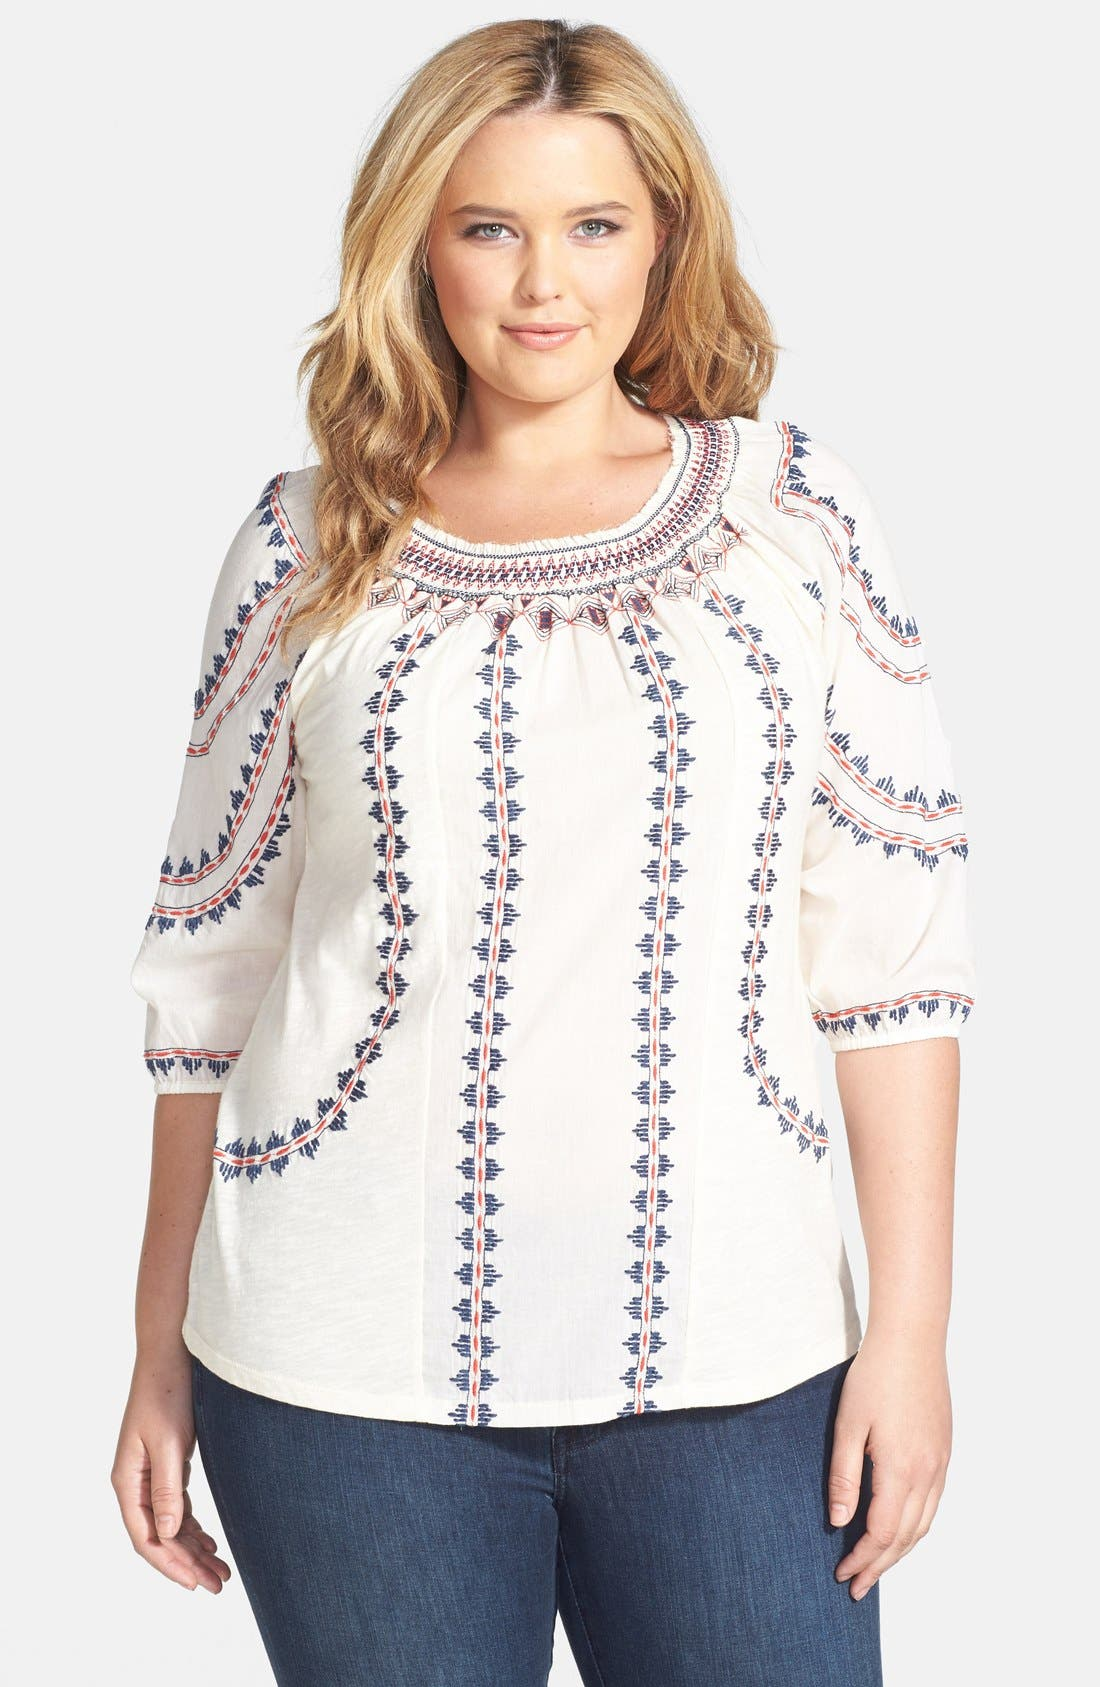 Alternate Image 1 Selected - Lucky Brand Embroidered Stripe Jersey Tee (Plus Size)